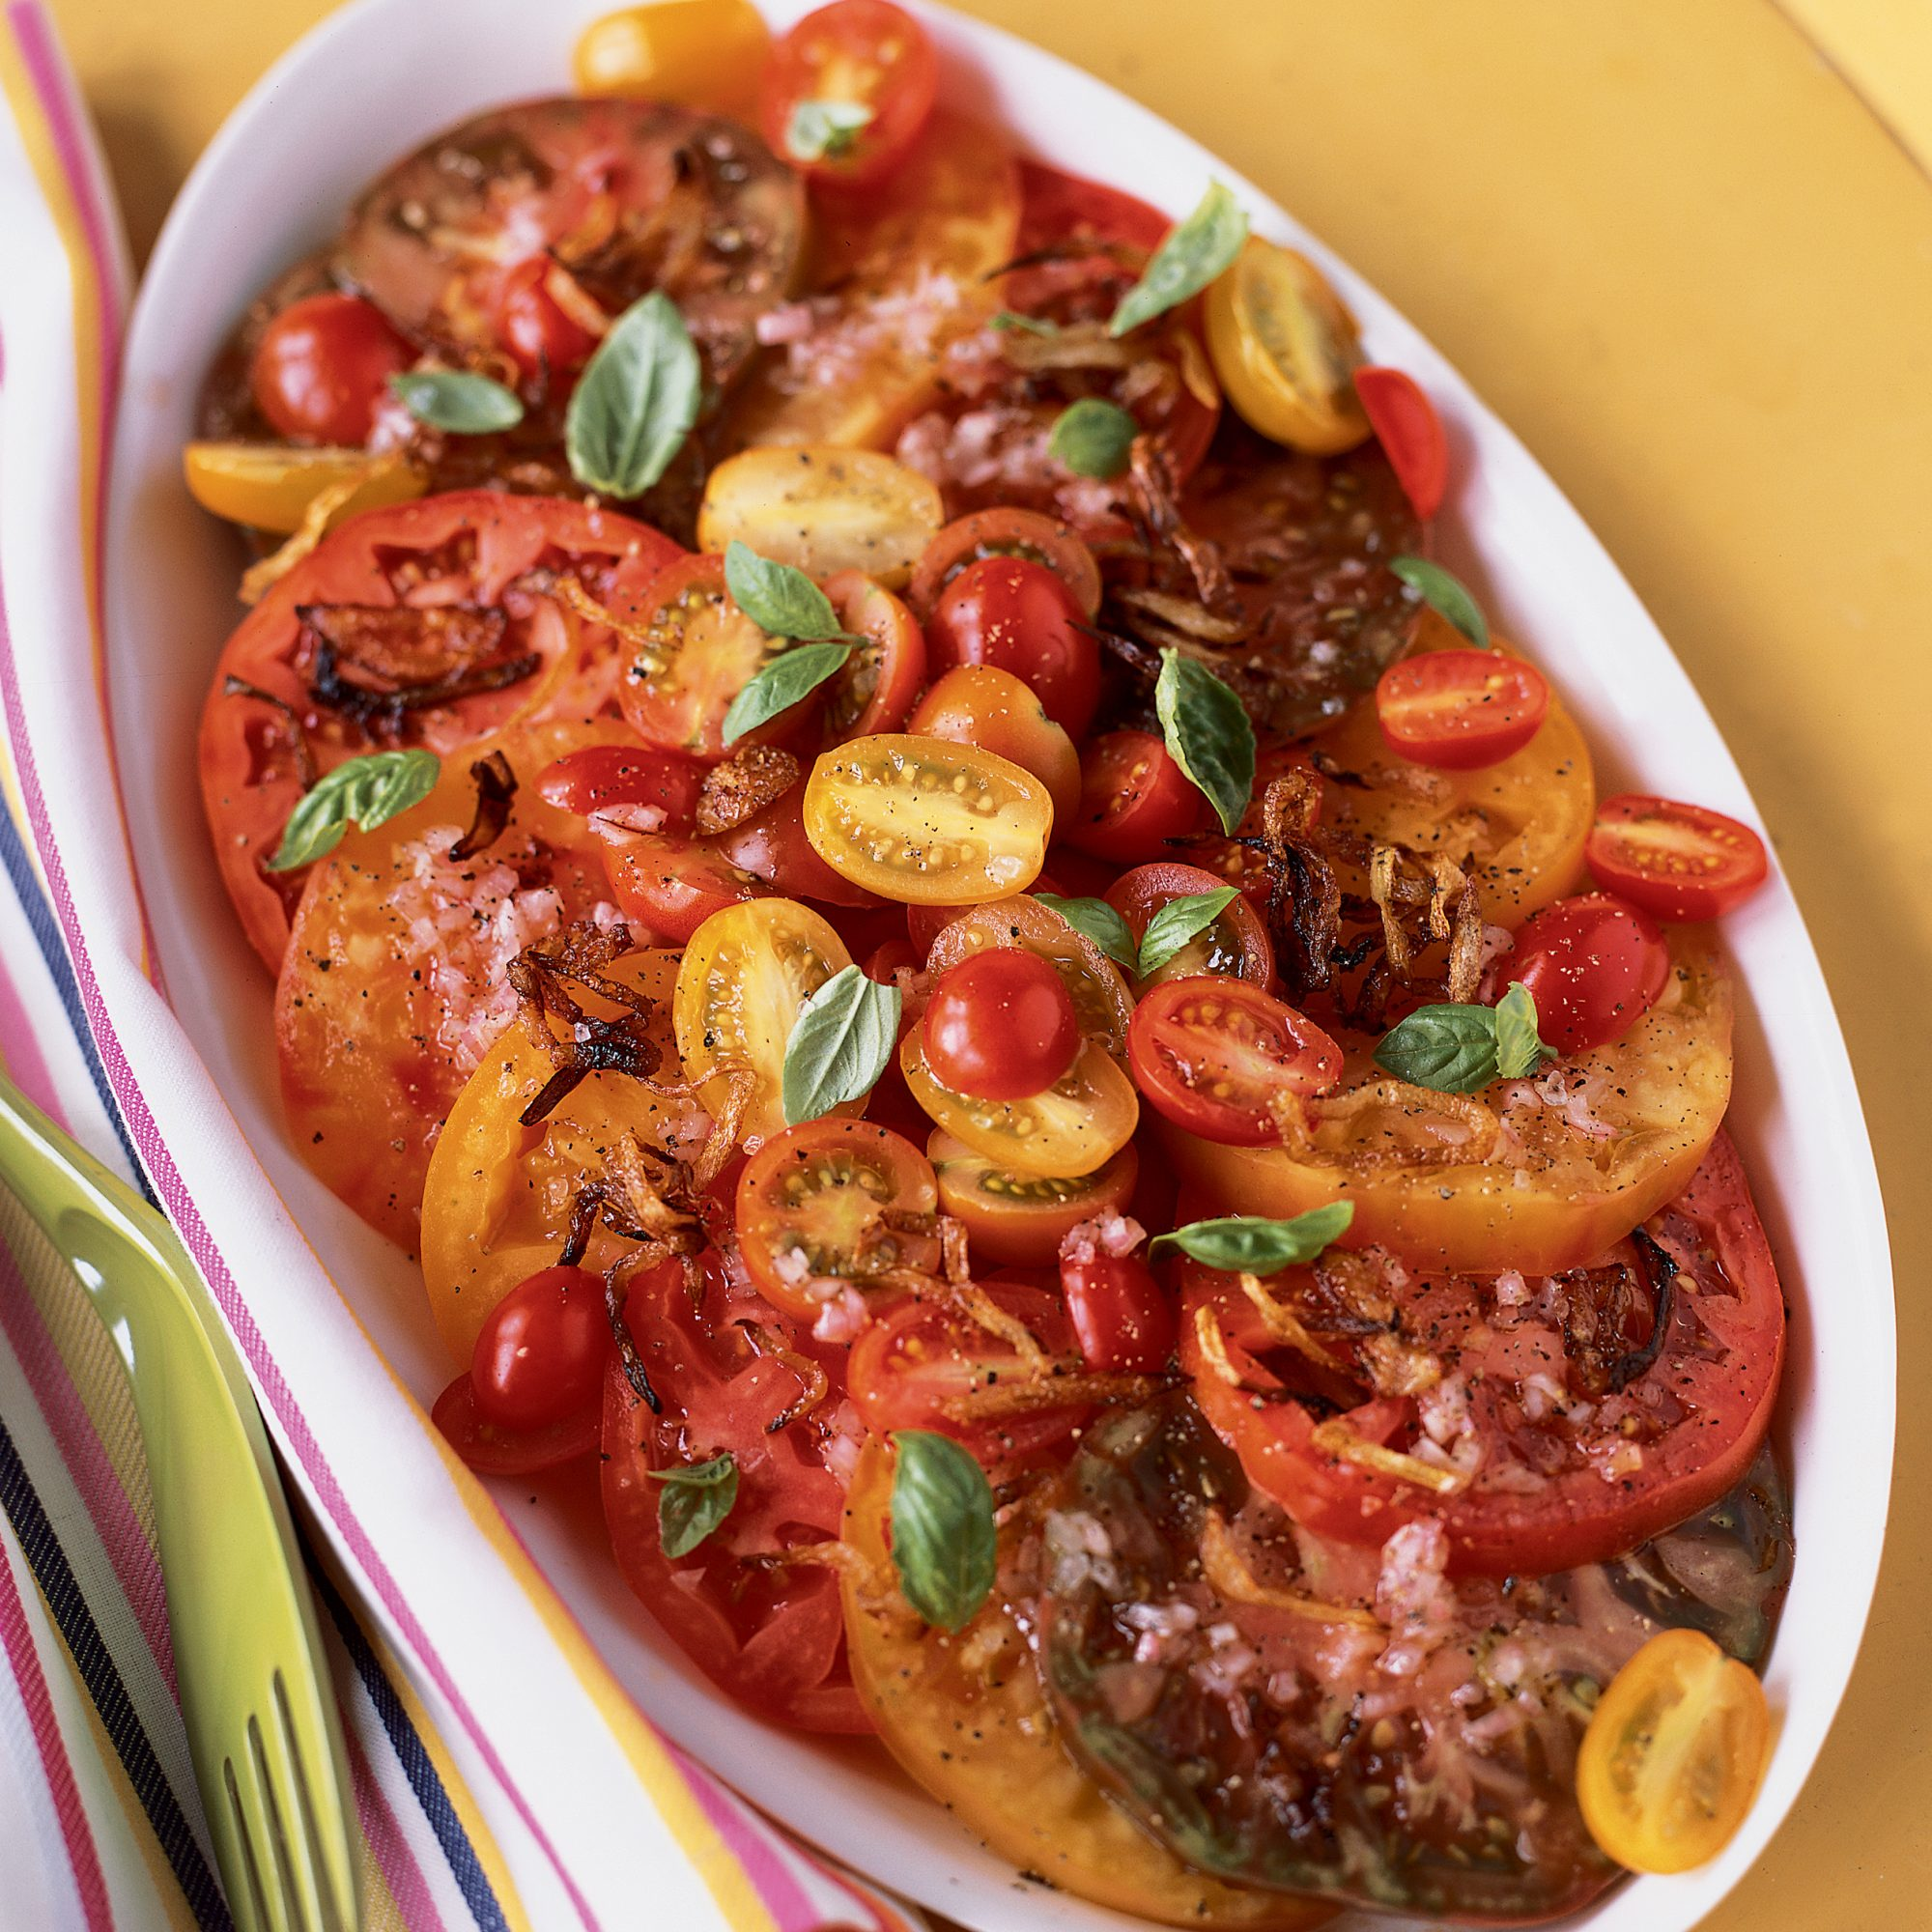 Tomato Salad with Crispy Shallots